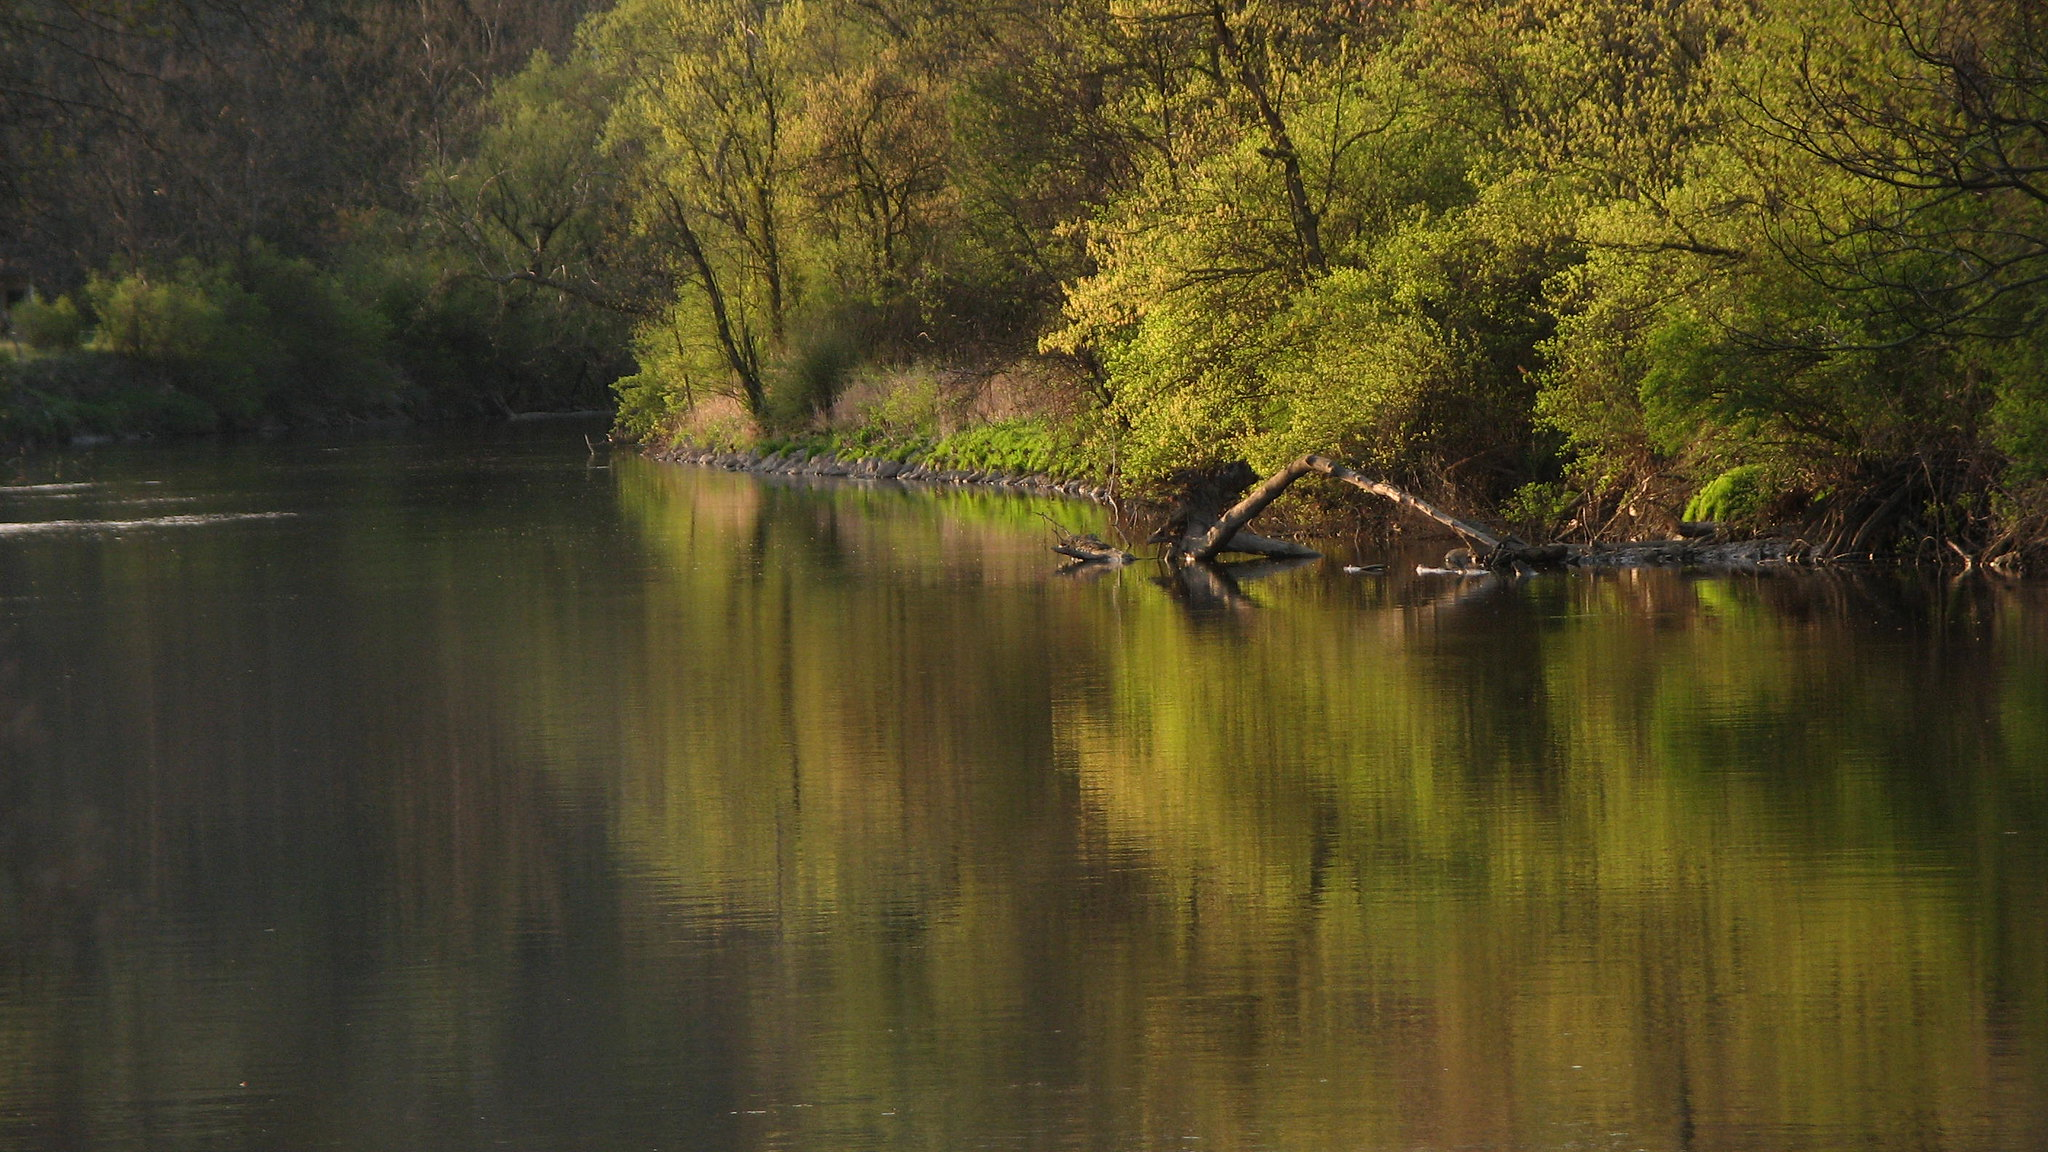 A river with still water reflects the green trees that line one of its banks, all under golden light.